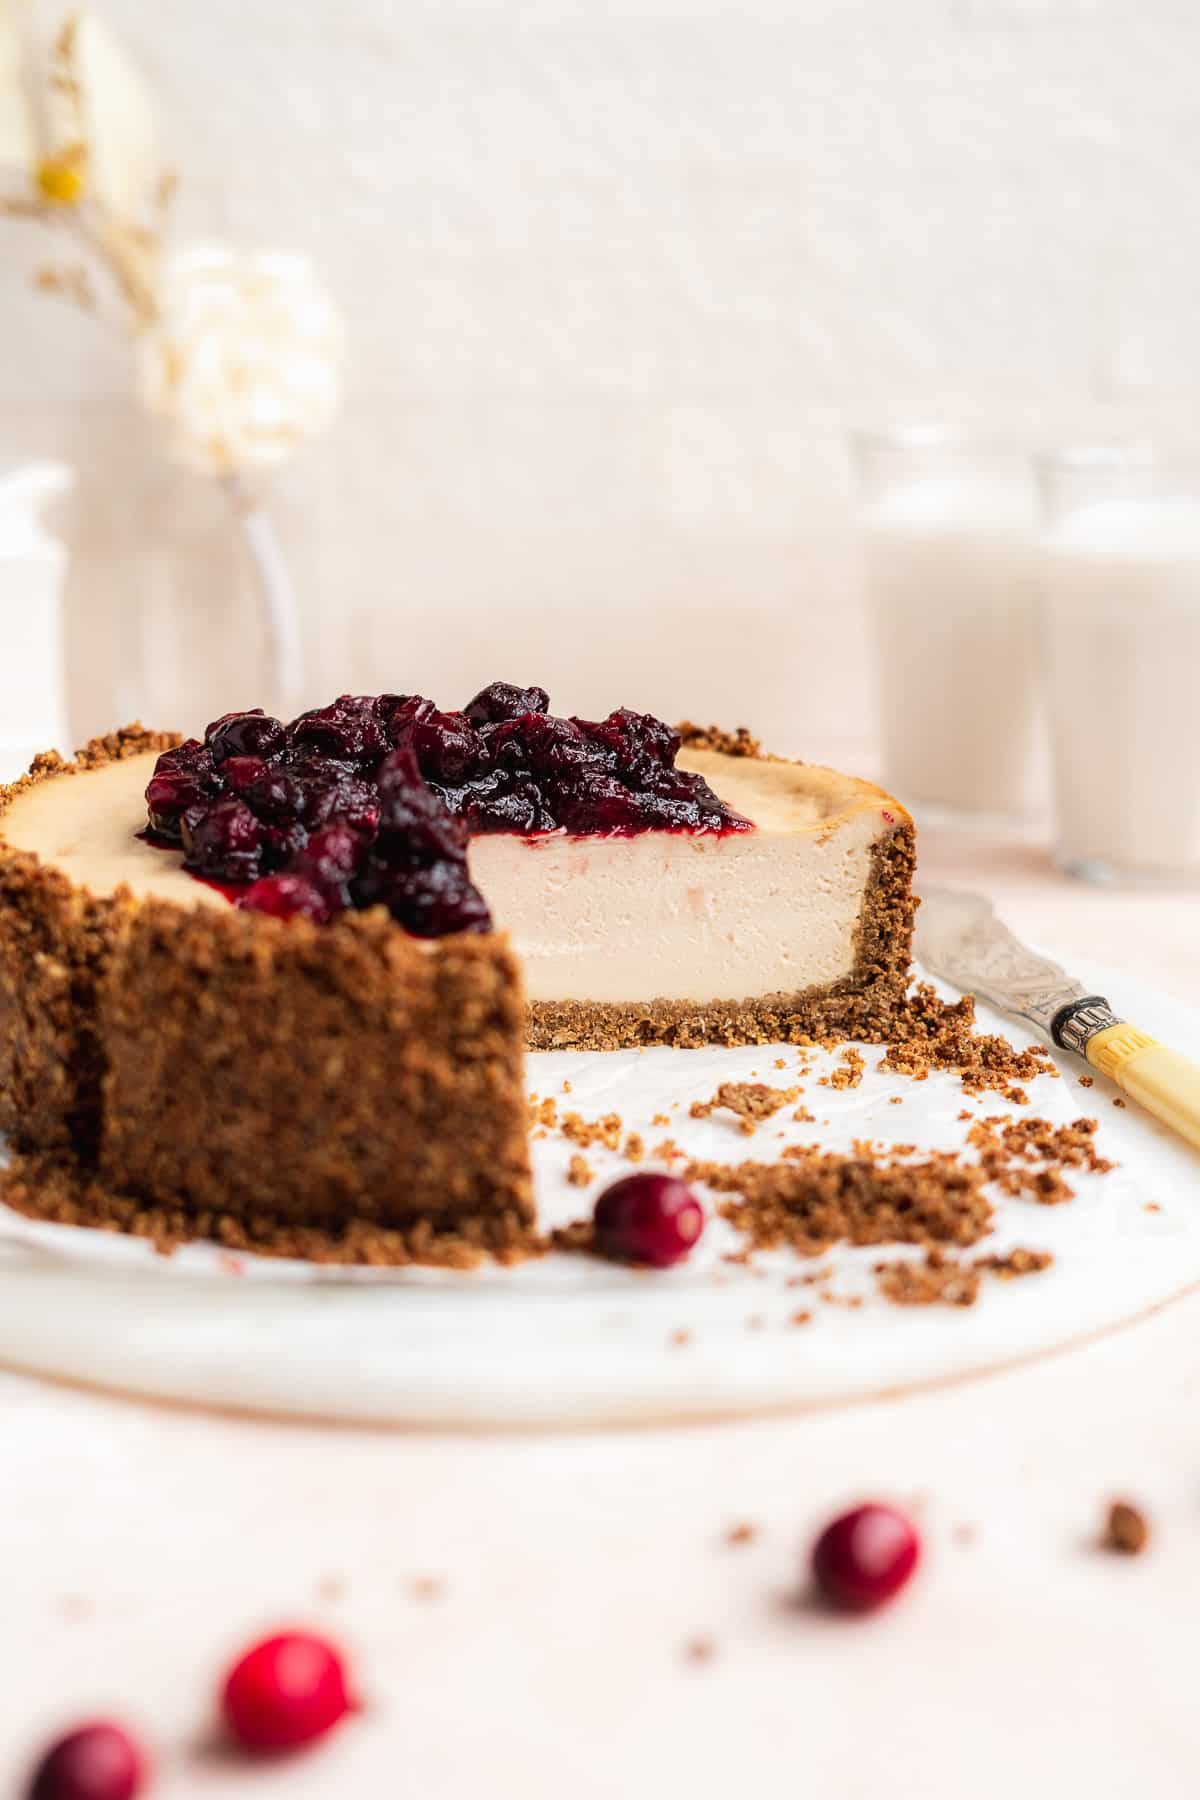 Side photo of Vegan Baked Cranberry Cheesecake with Graham Cracker Crust with a section removed showing the delicious thick cheesecake inside.